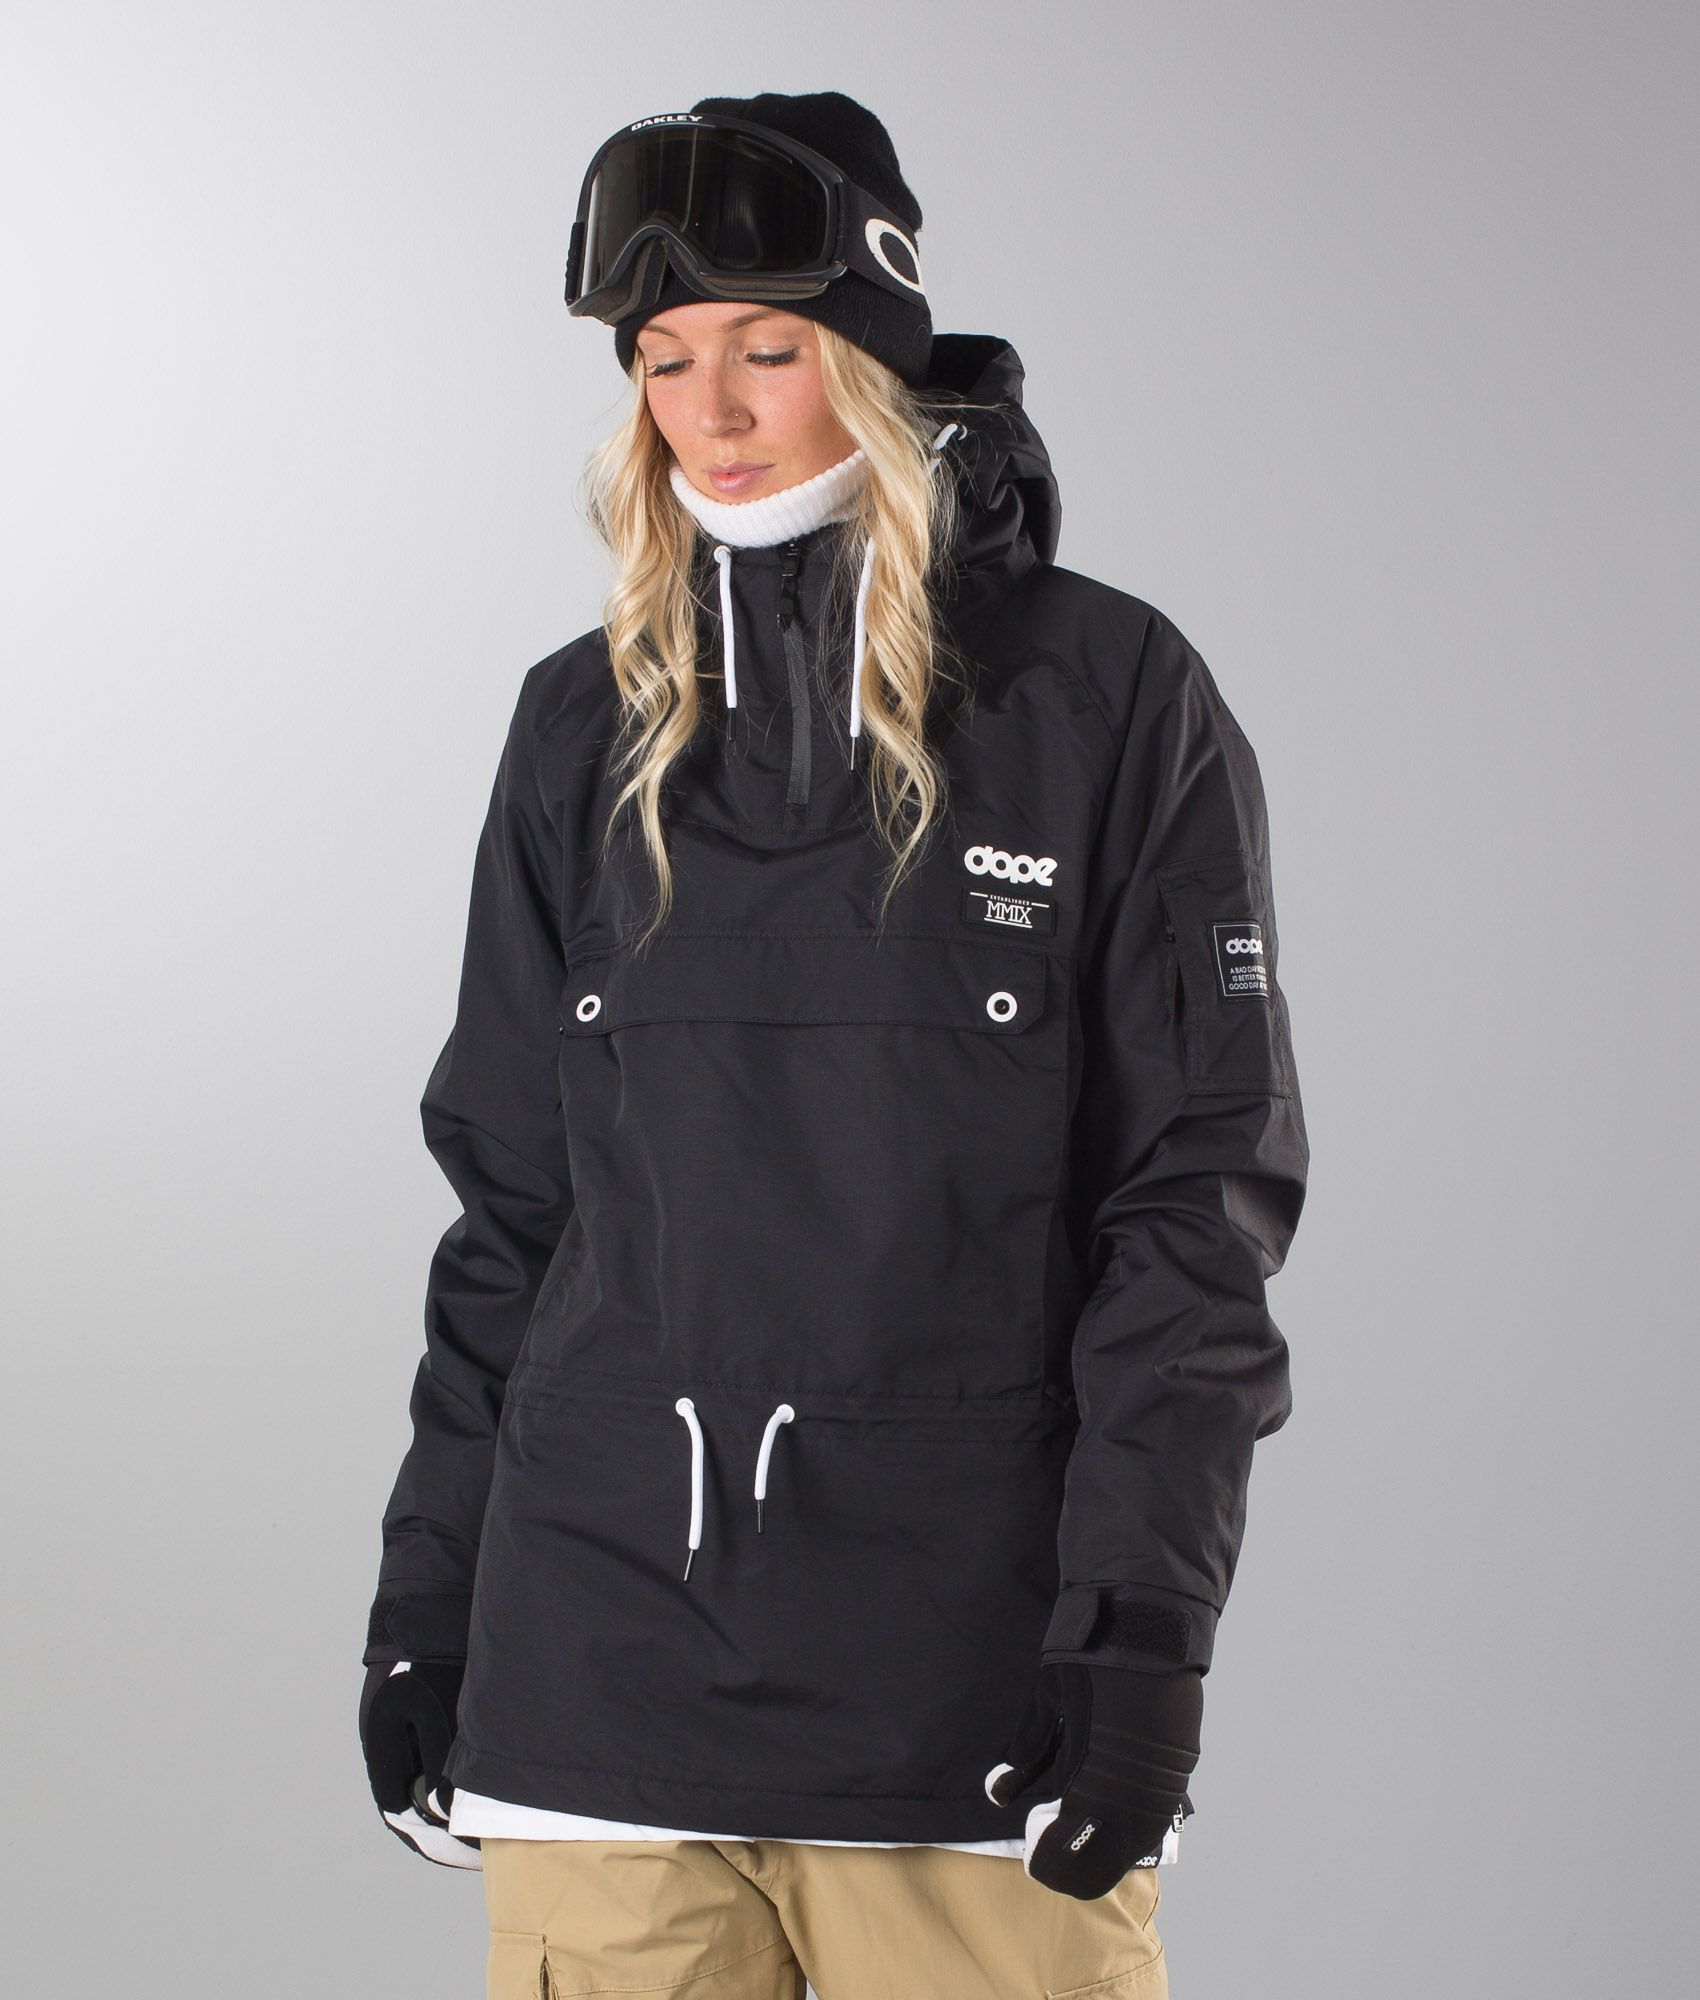 8980a98eee Buy Annok Unisex Snowboard Jacket from Dope at Ridestore.com - Always free  shipping